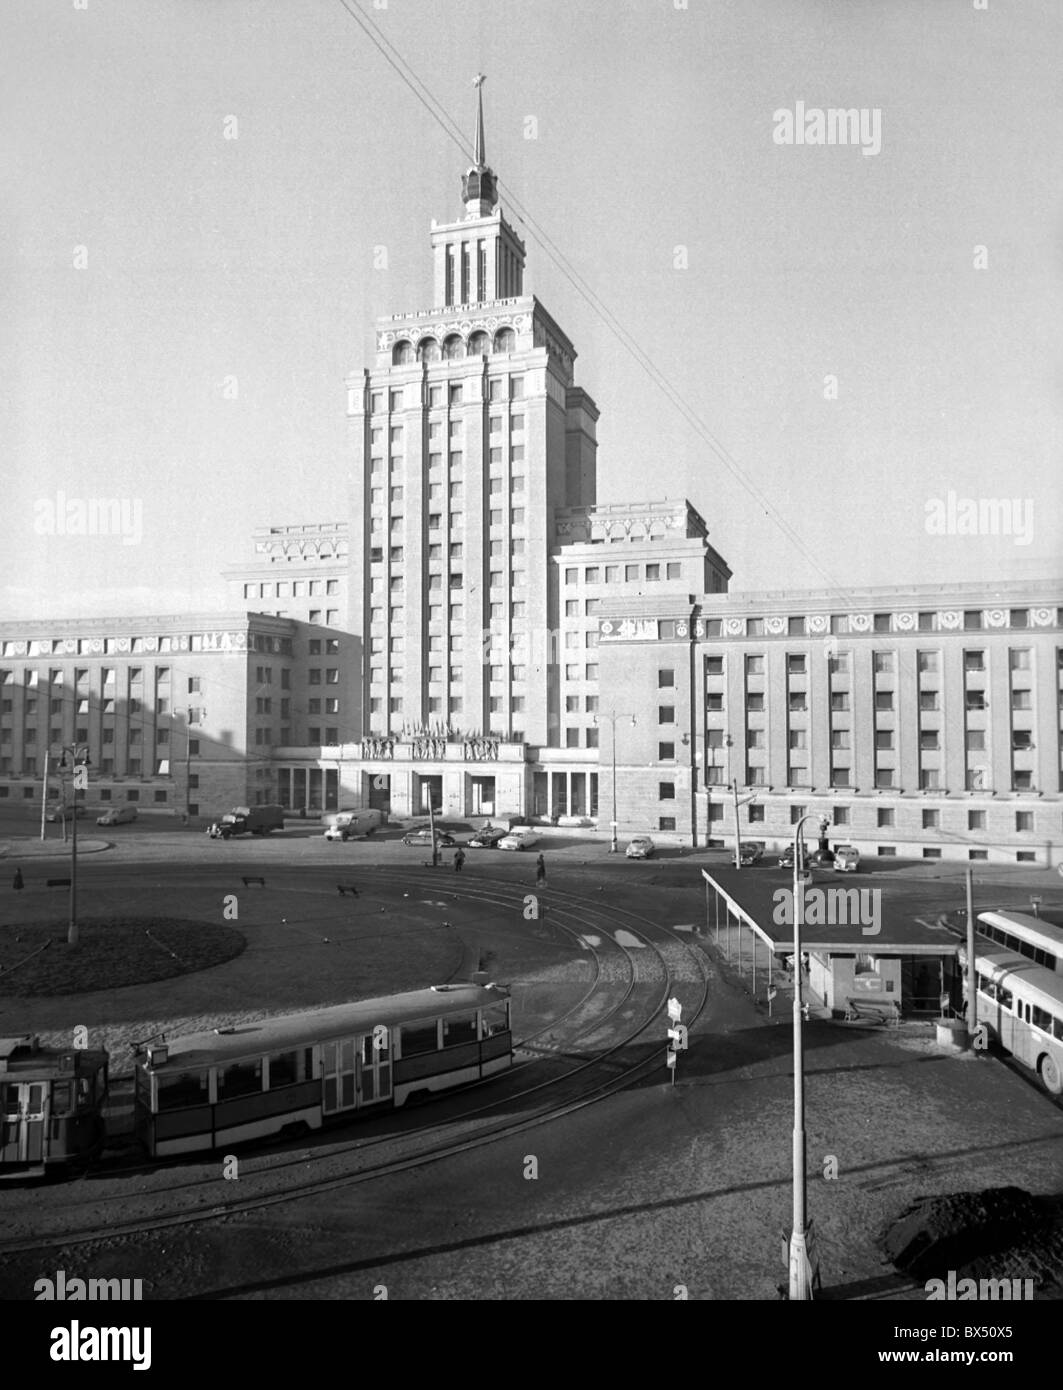 Hotel International is a typical exmple of Socialist Realism. Constructed according to Soviet design in 1954 near - Stock Image